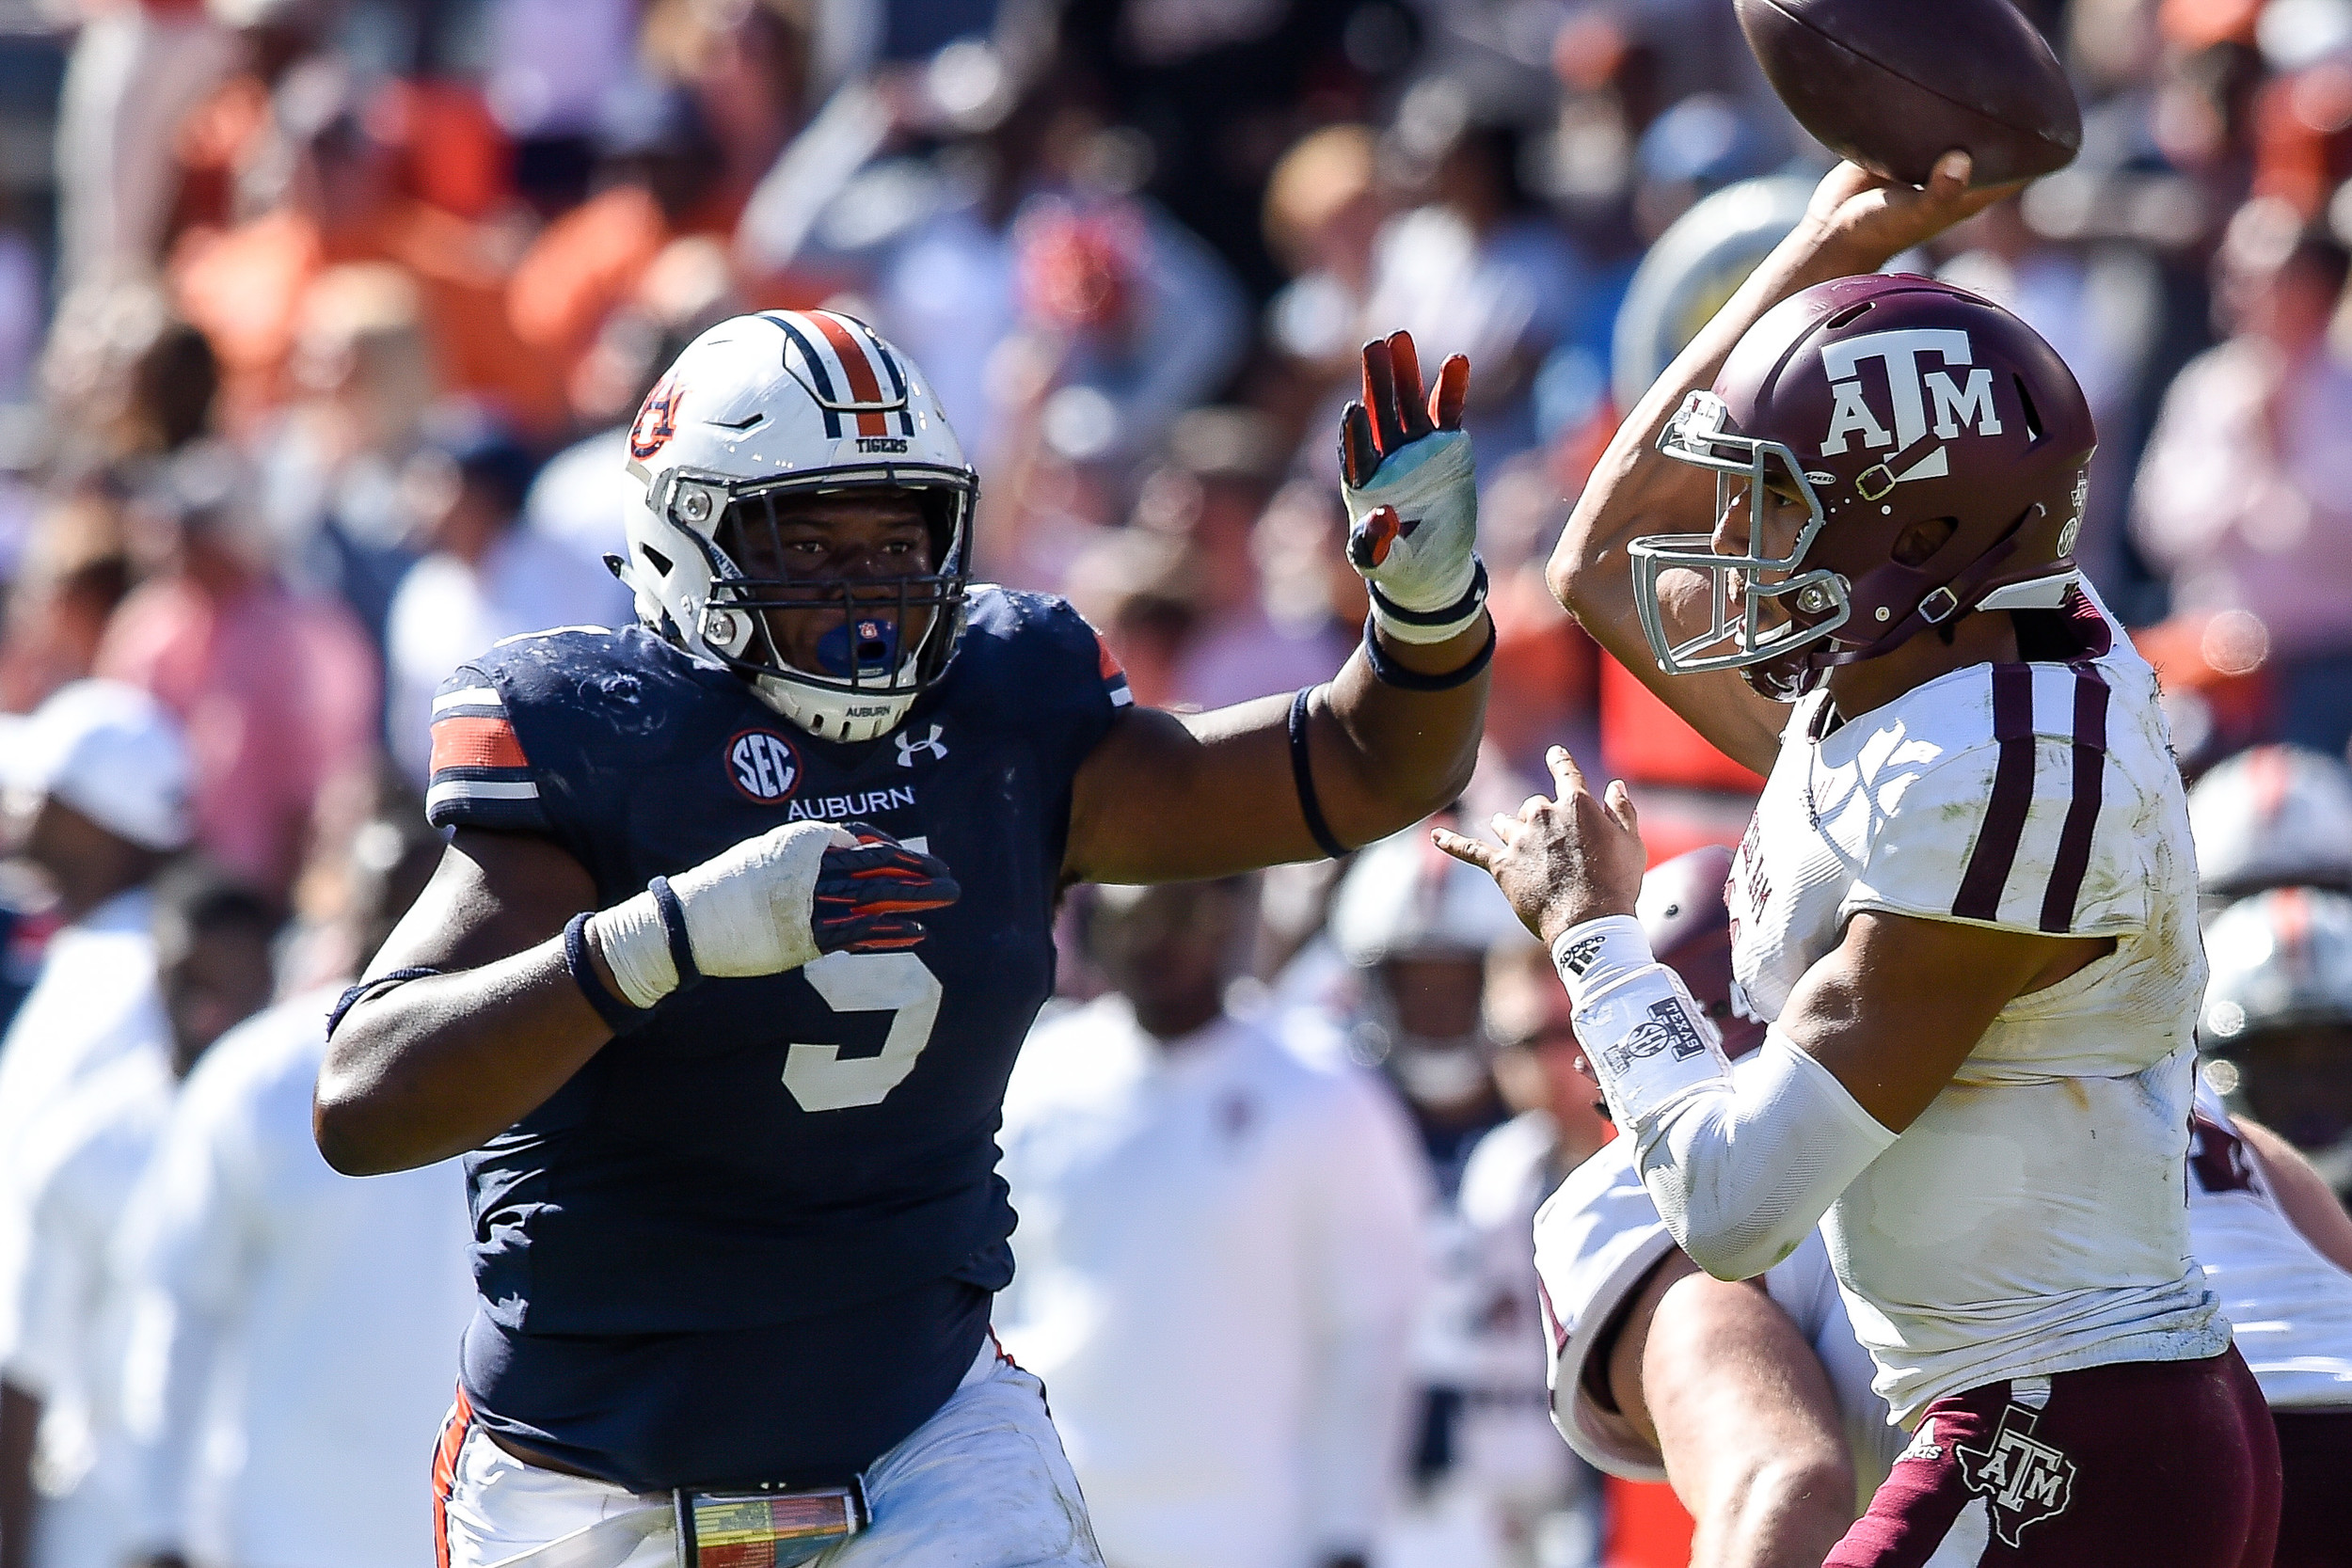 Auburn Tigers defensive lineman Derrick Brown (5) pressures Texas A&M Aggies quarterback Kellen Mond (11) during the second half of an NCAA football game against the Texas A&M Aggies Saturday, November 3, 2018, at Jordan-Hare Stadium in Auburn, Ala. (Photo by Jeff Johnsey)